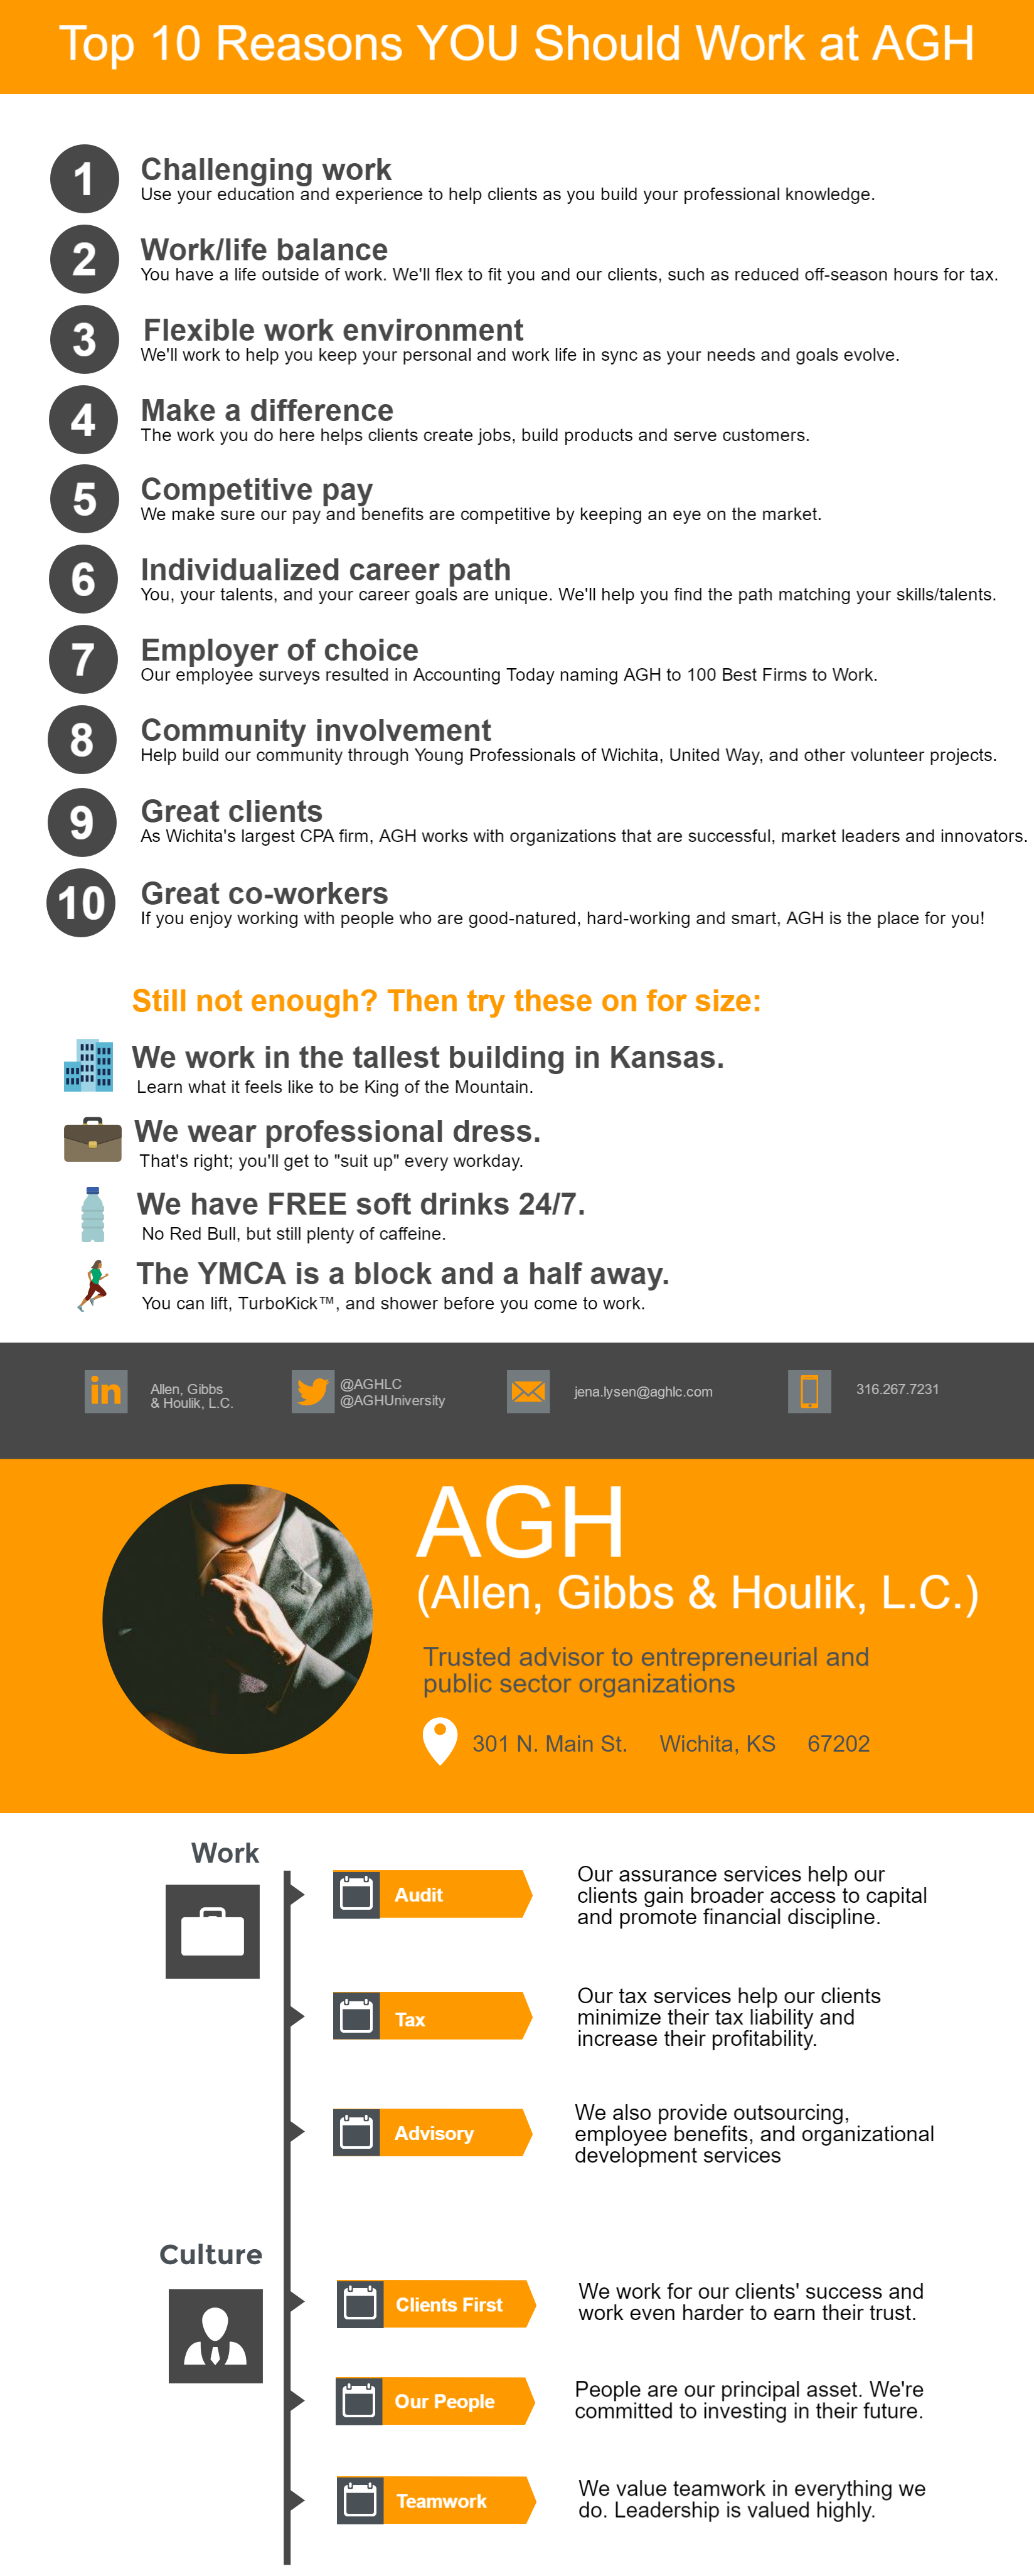 Top 10 reasons to work at AGH infographic